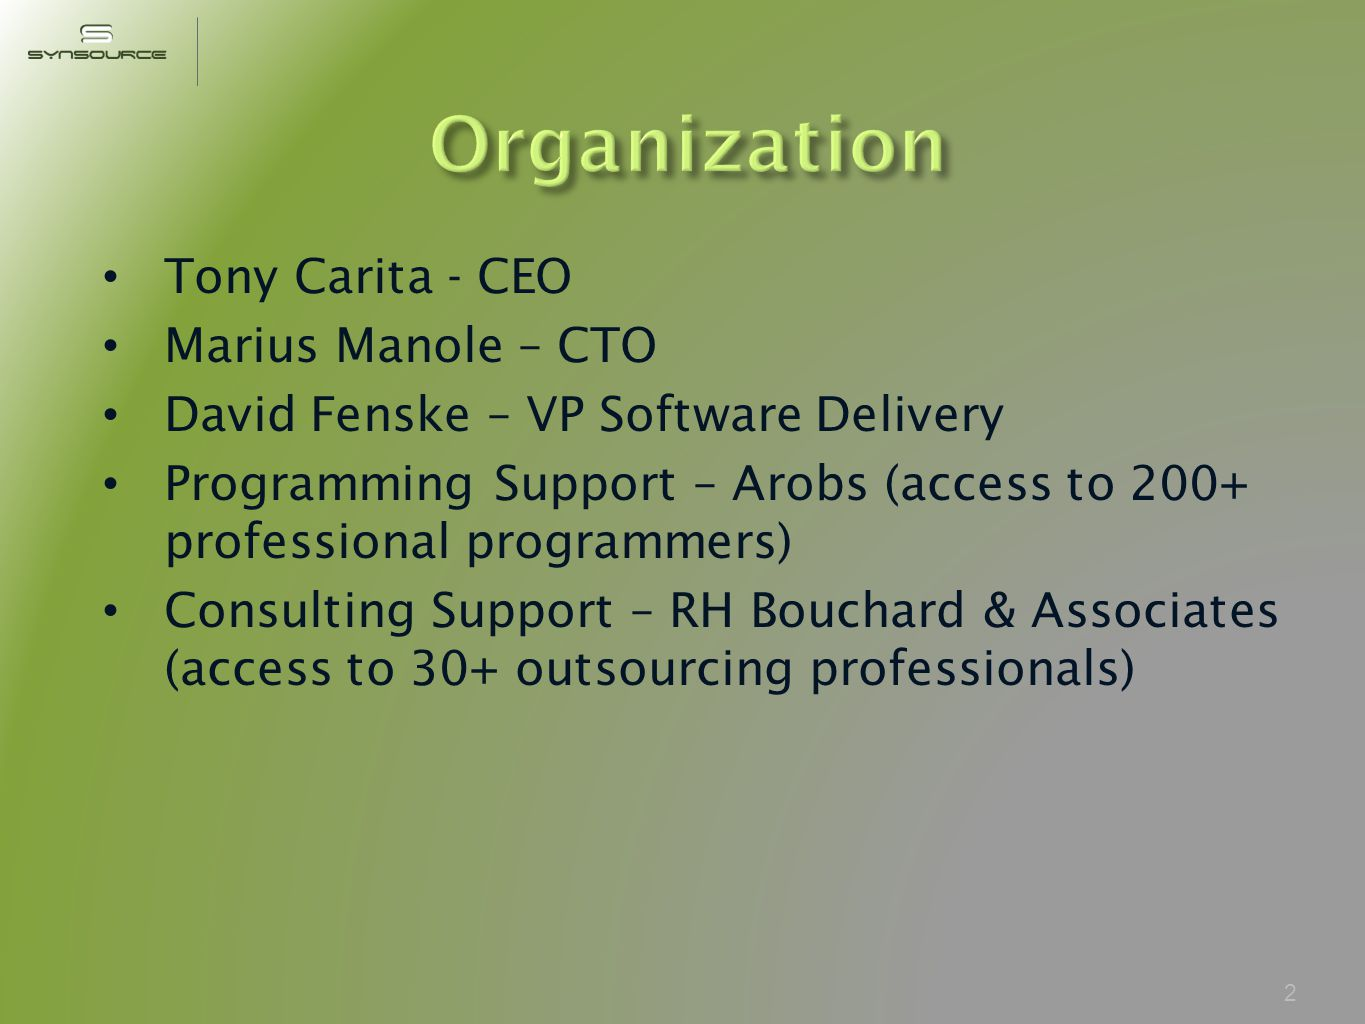 Tony Carita - CEO Marius Manole – CTO David Fenske – VP Software Delivery Programming Support – Arobs (access to 200+ professional programmers) Consulting Support – RH Bouchard & Associates (access to 30+ outsourcing professionals) 2